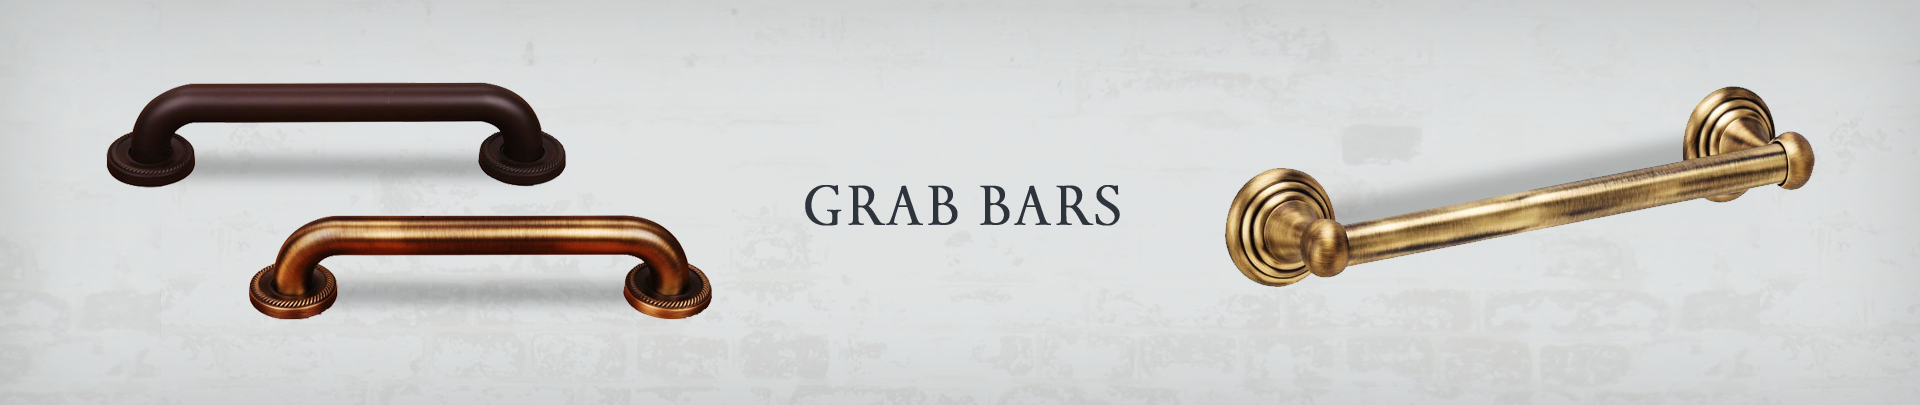 bath-grab-bars.png